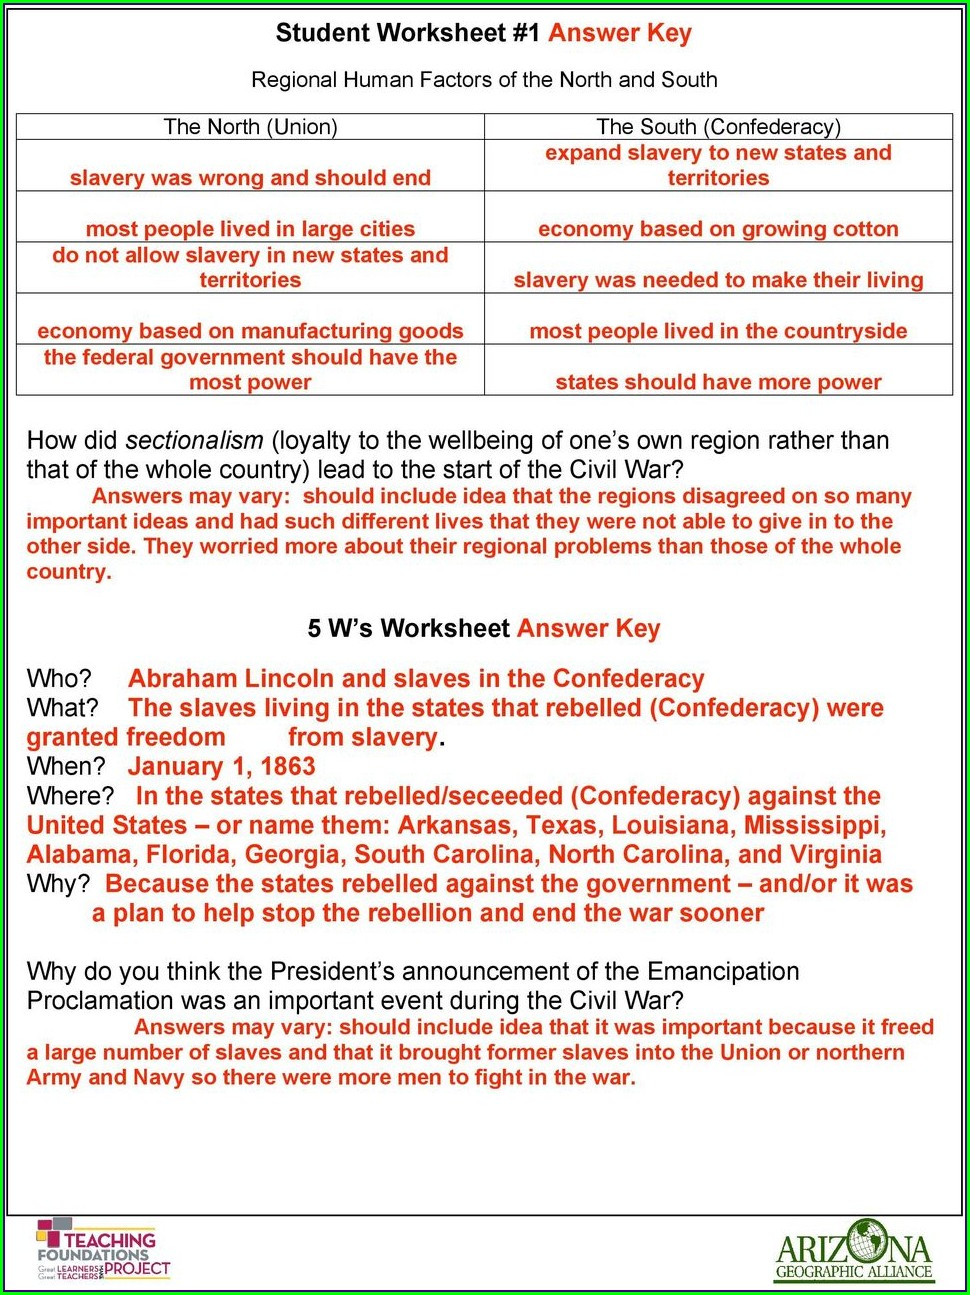 Civil War Timeline Worksheet Answer Key